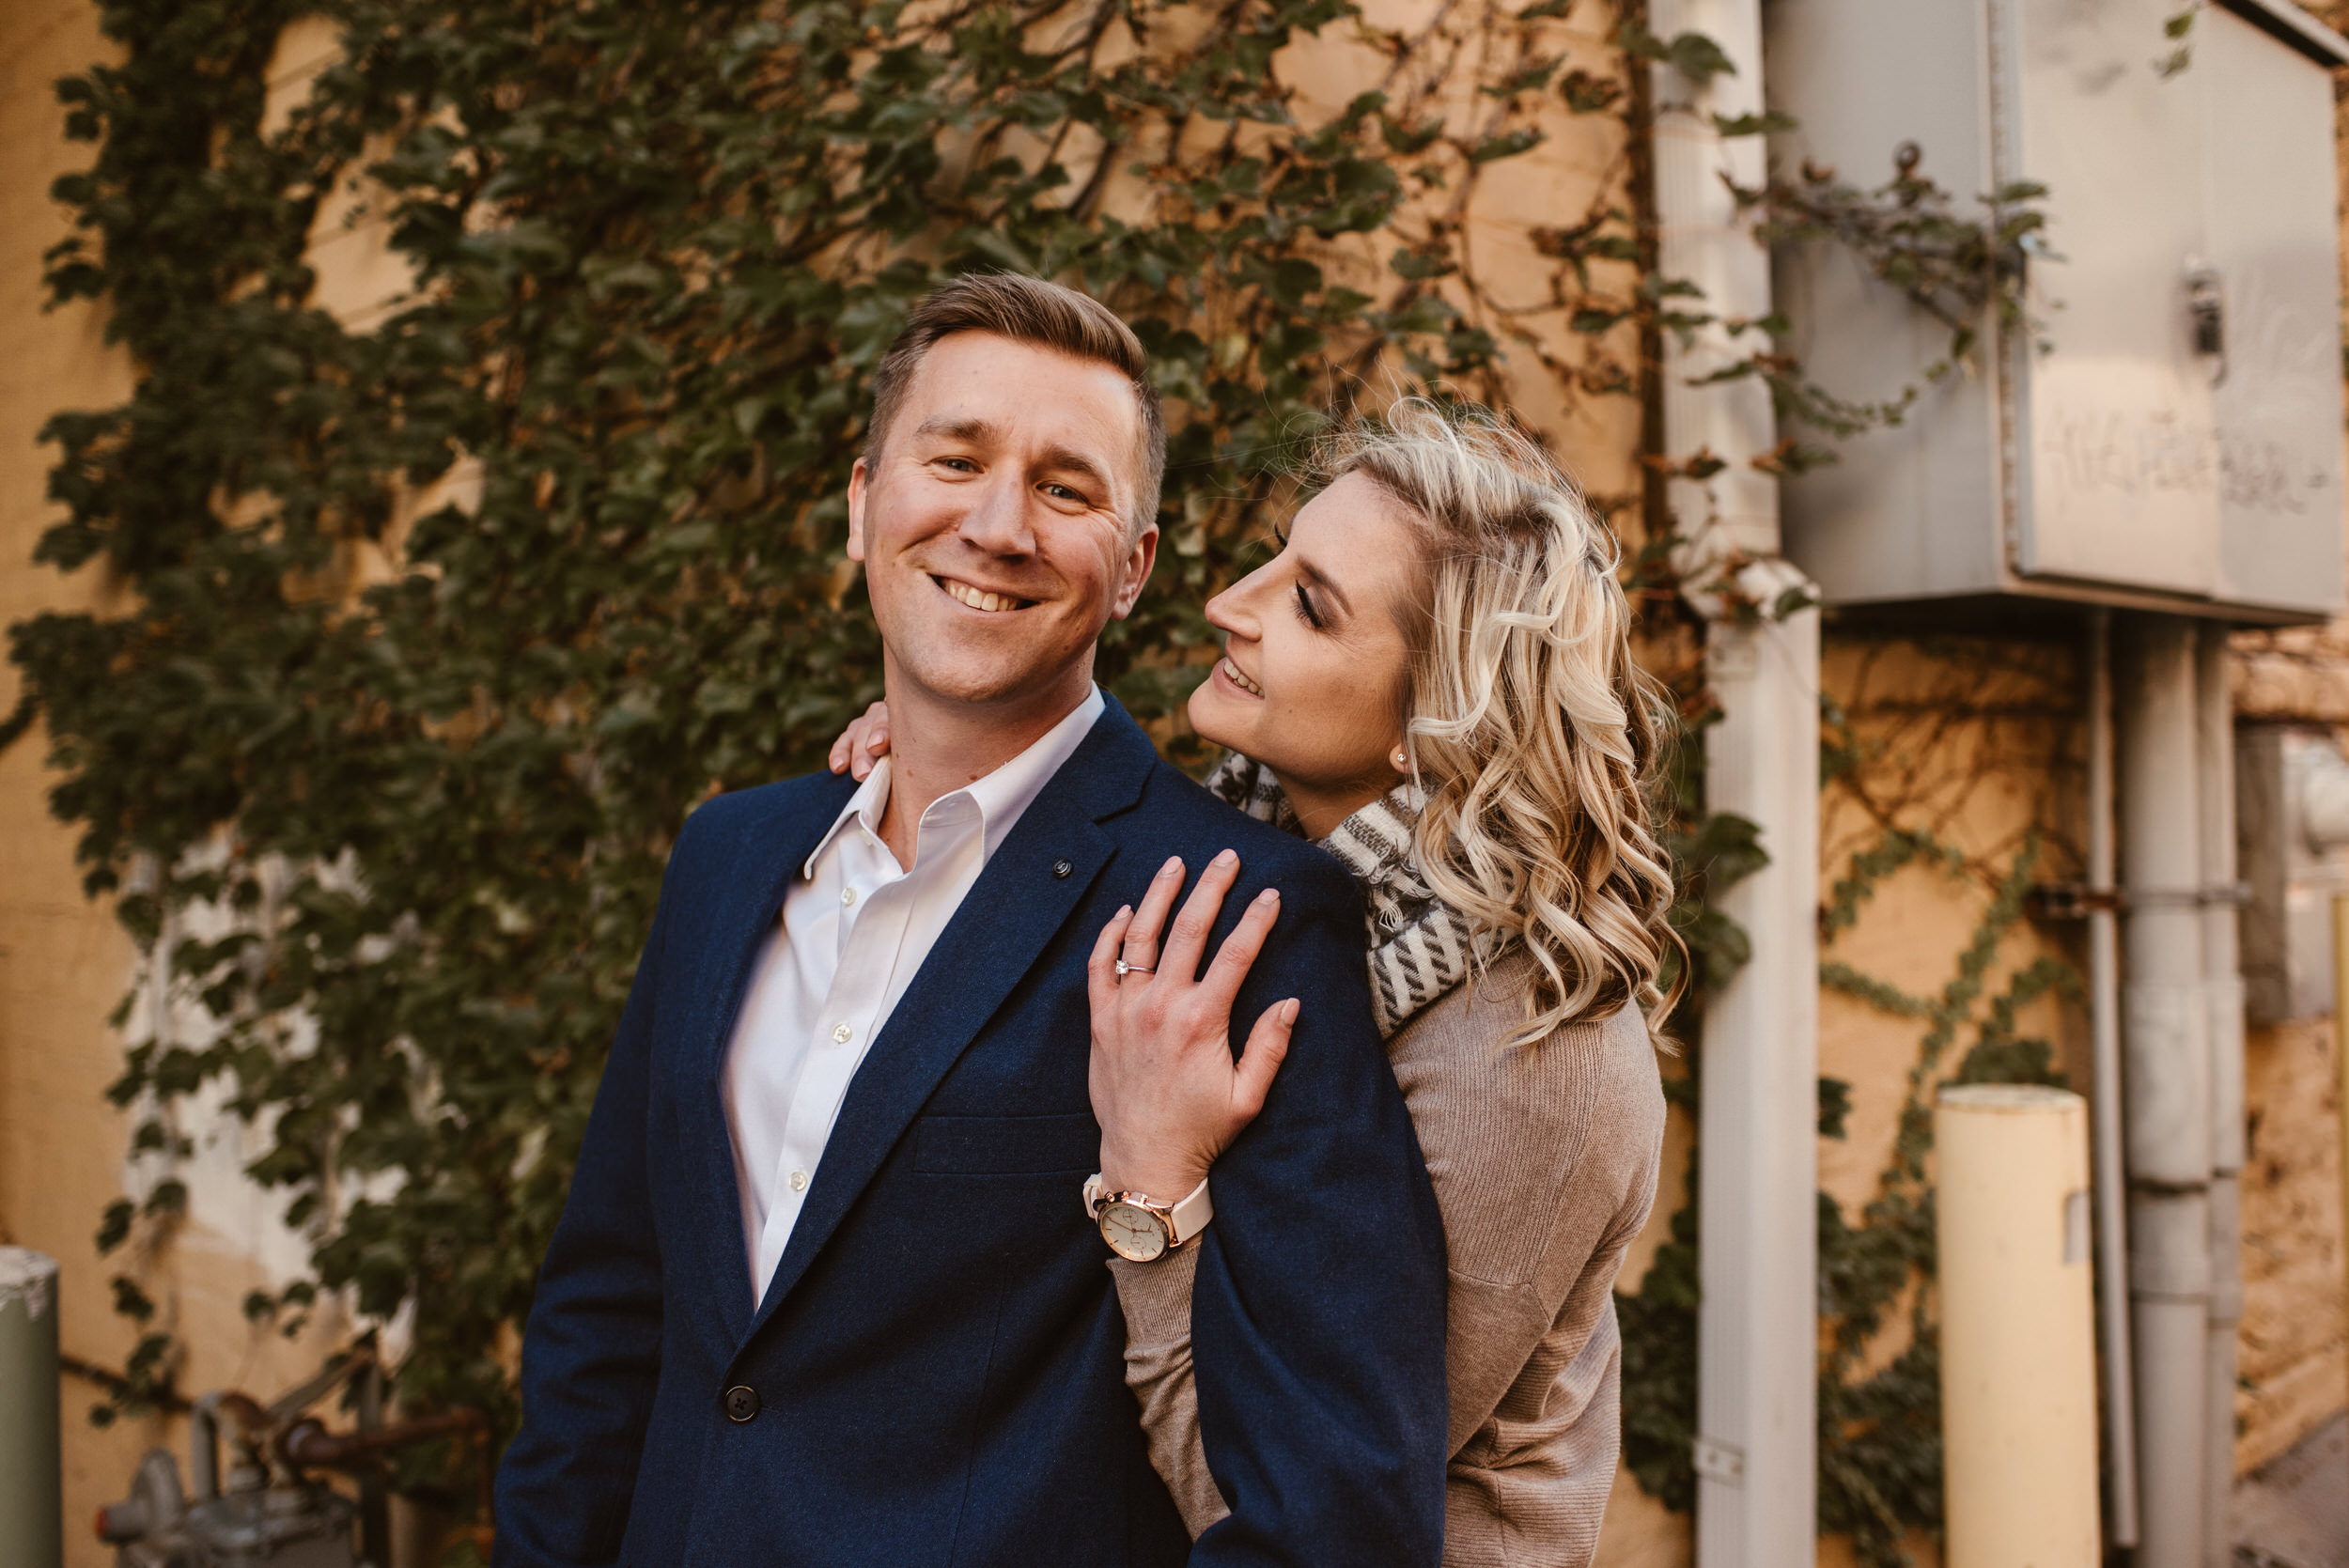 Gene Leahy Mall Omaha Engagement Session Kaylie Sirek Photography 21.jpg